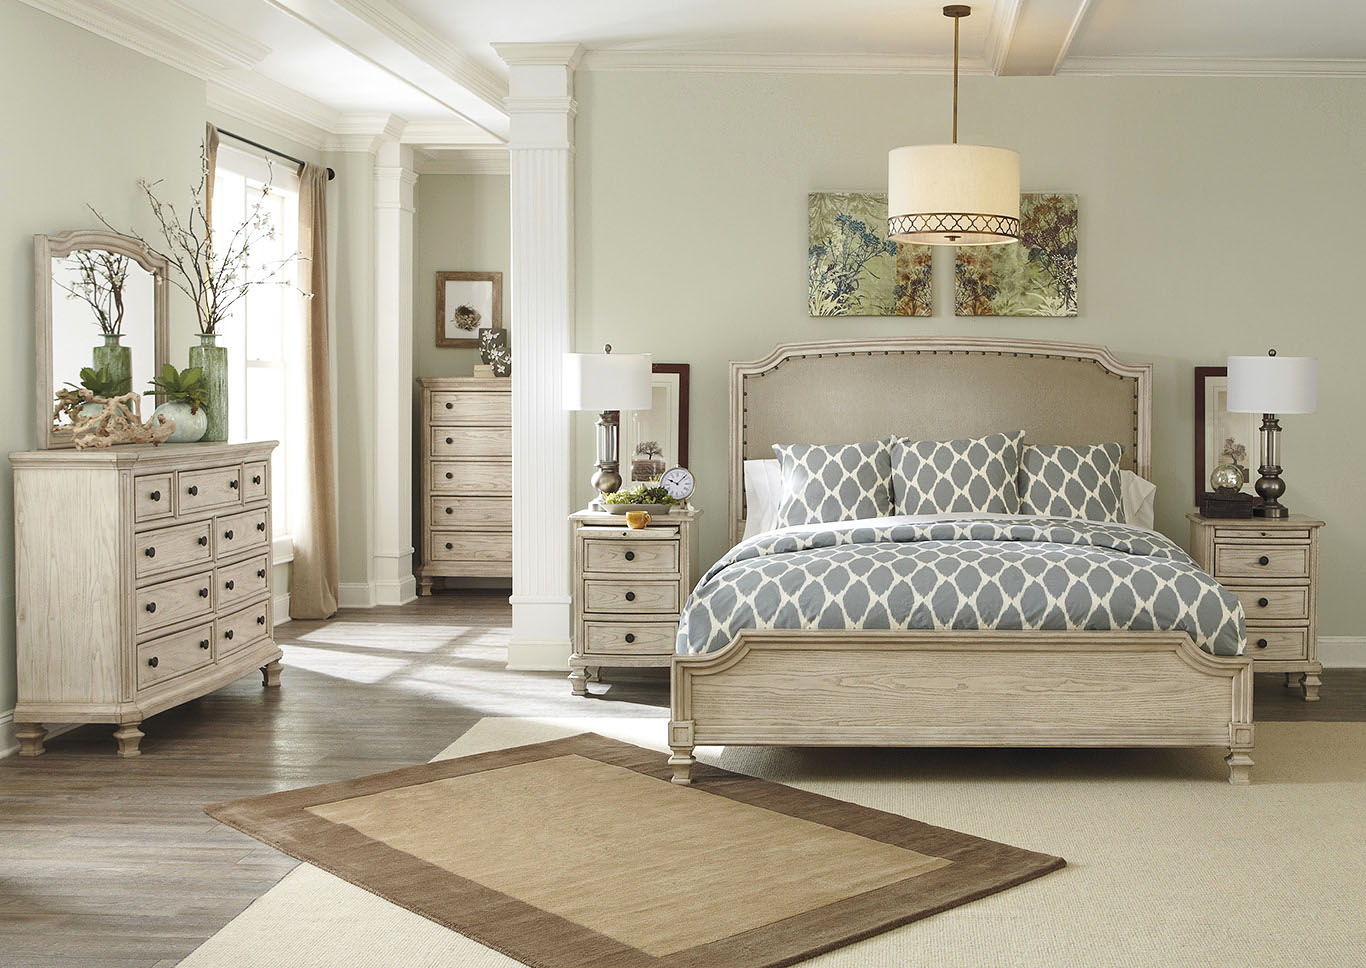 Demarlos King Upholstered Panel Bed w/Dresser, Mirror, Chest & Night Table,Signature Design By Ashley